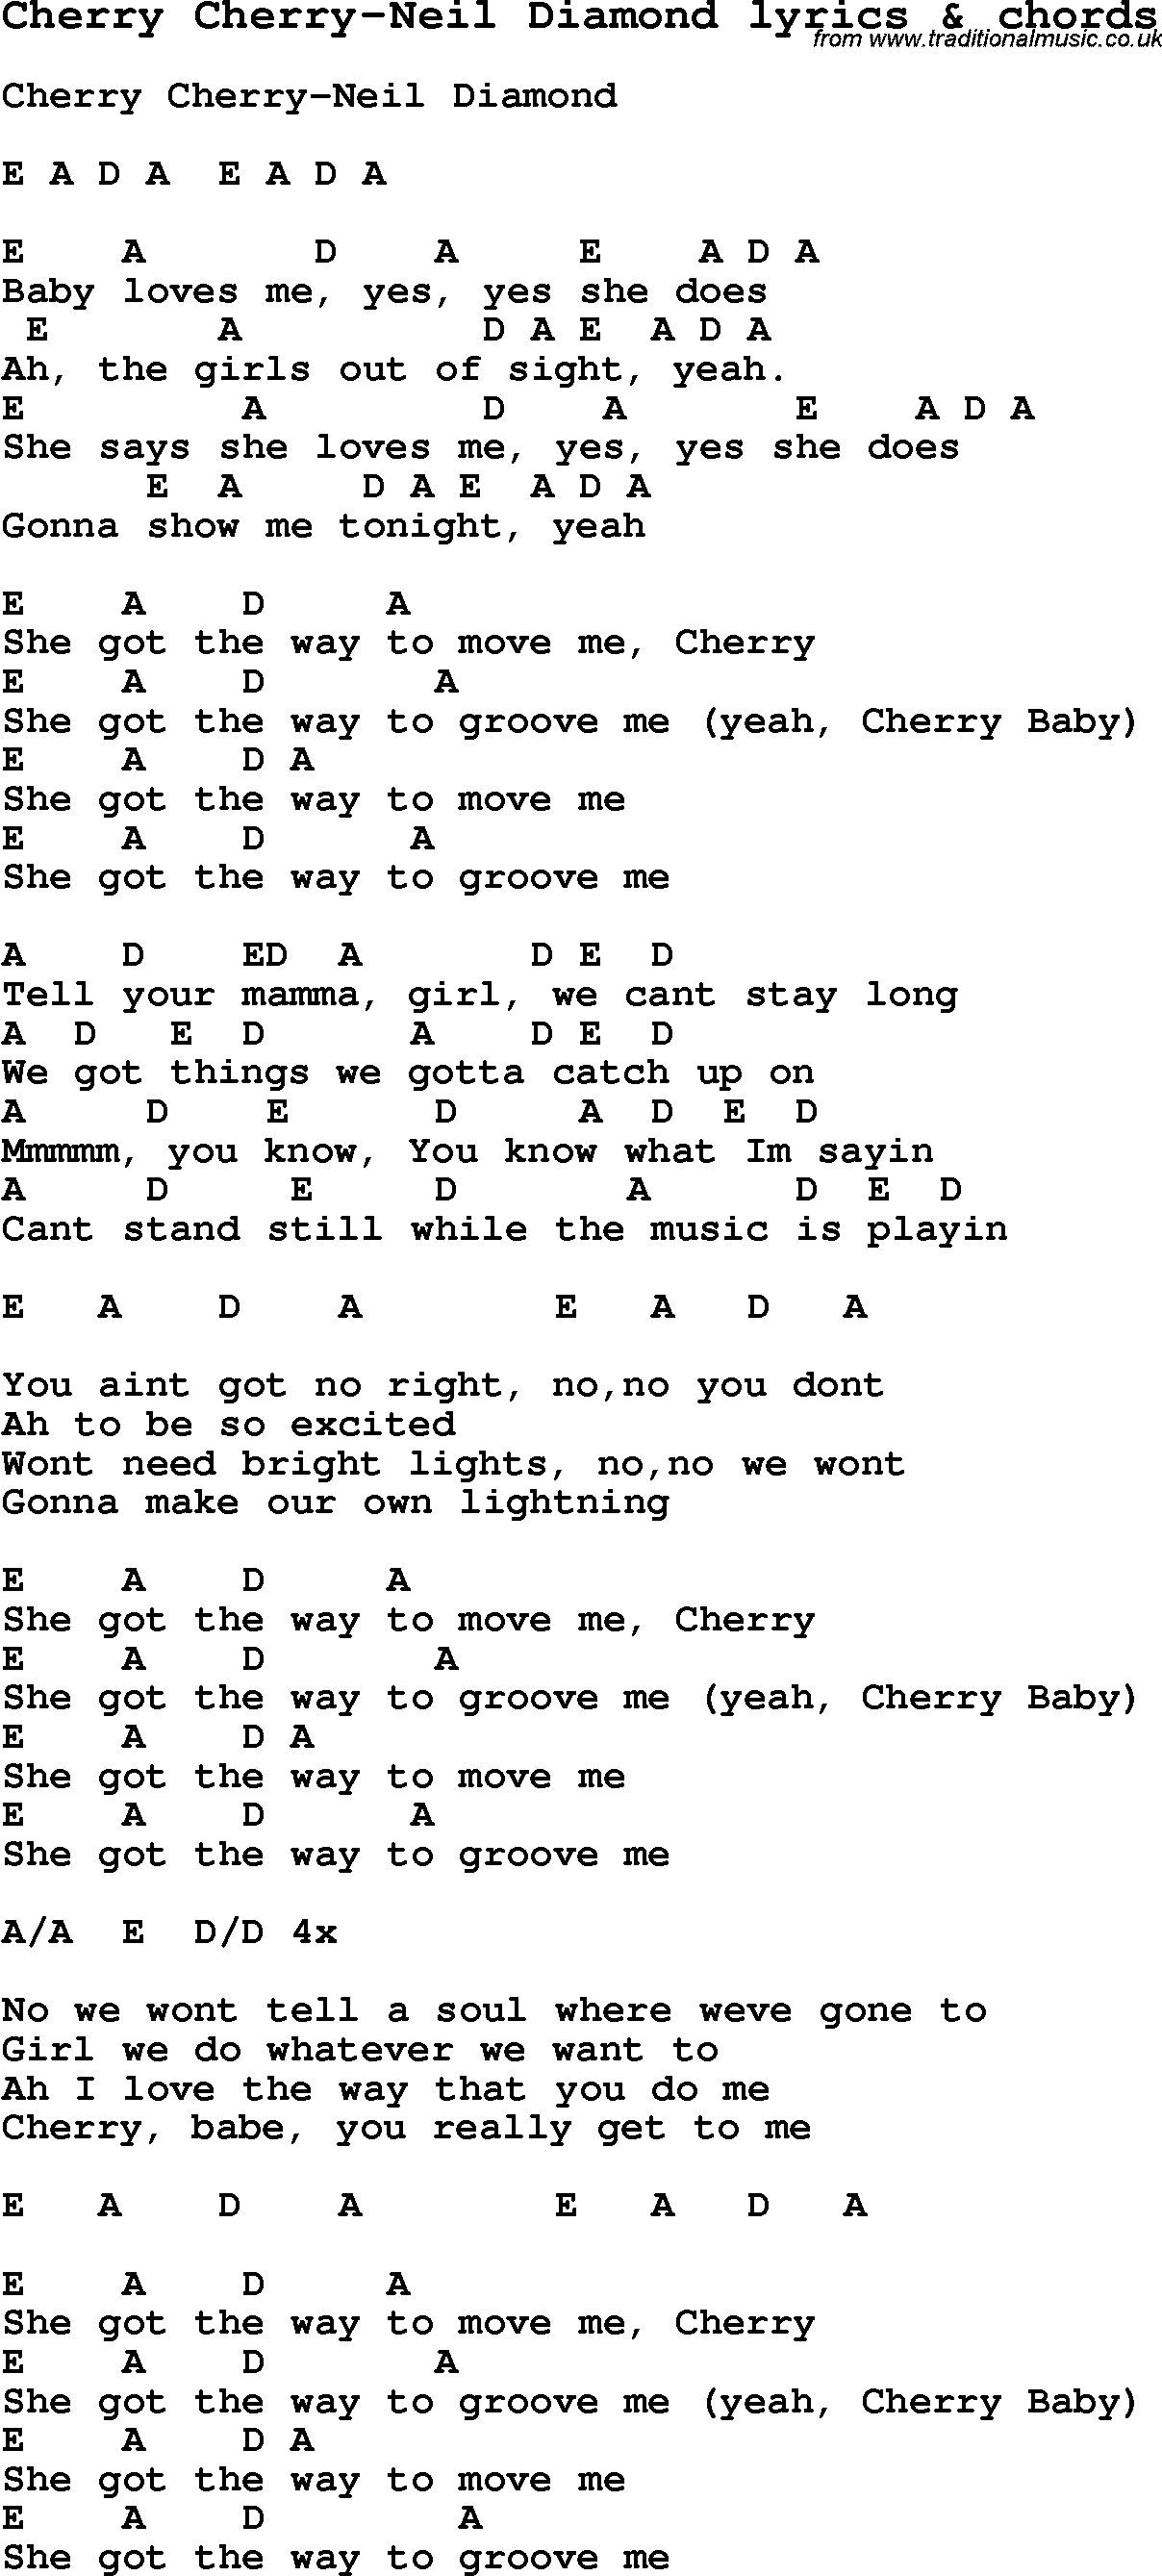 Love Song Lyrics Forcherry Cherry Neil Diamond With Chords